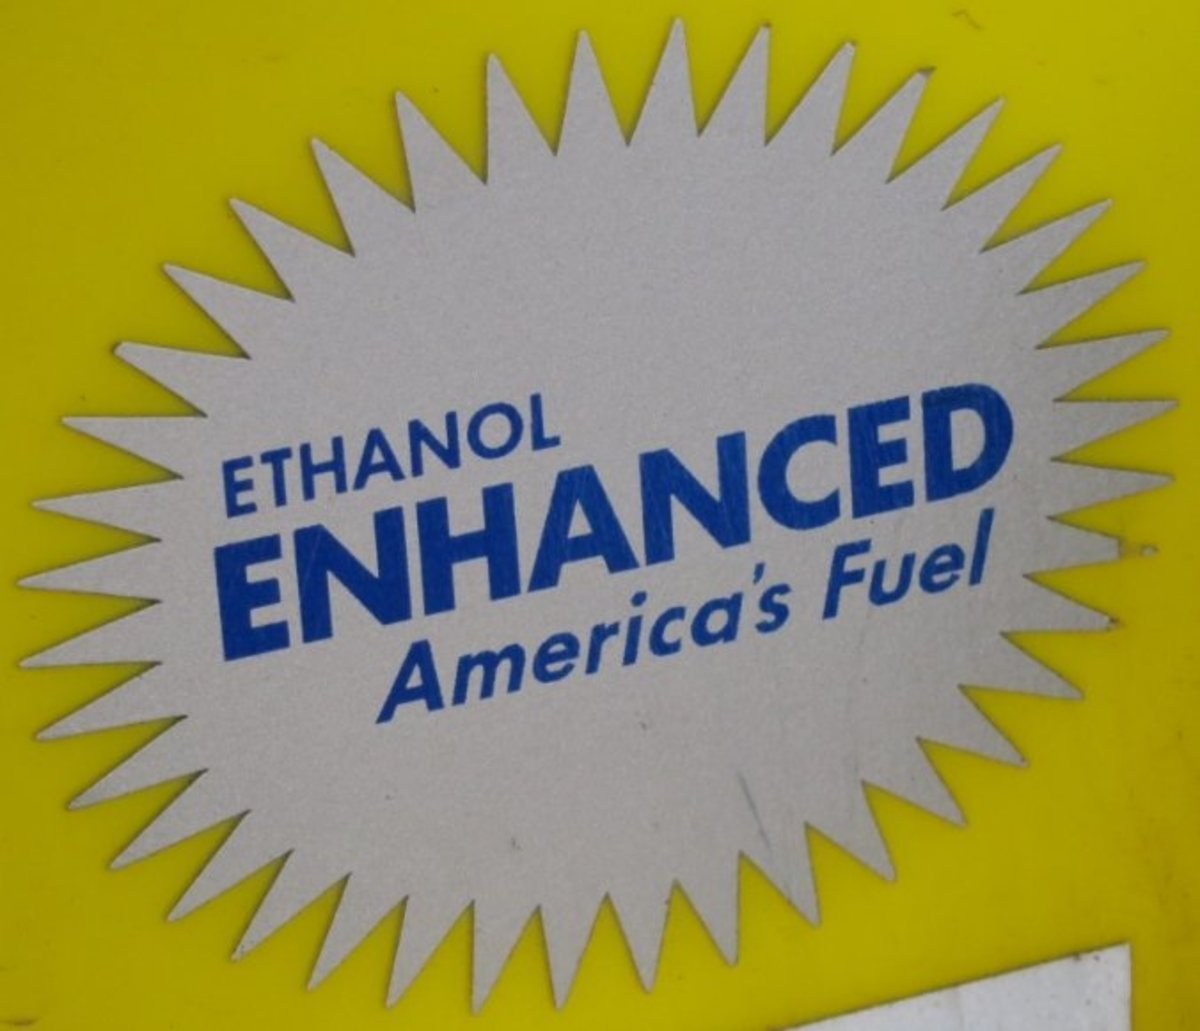 The advertisement from a local chain of filling stations for ethanol treated gasoline, also known as E10.